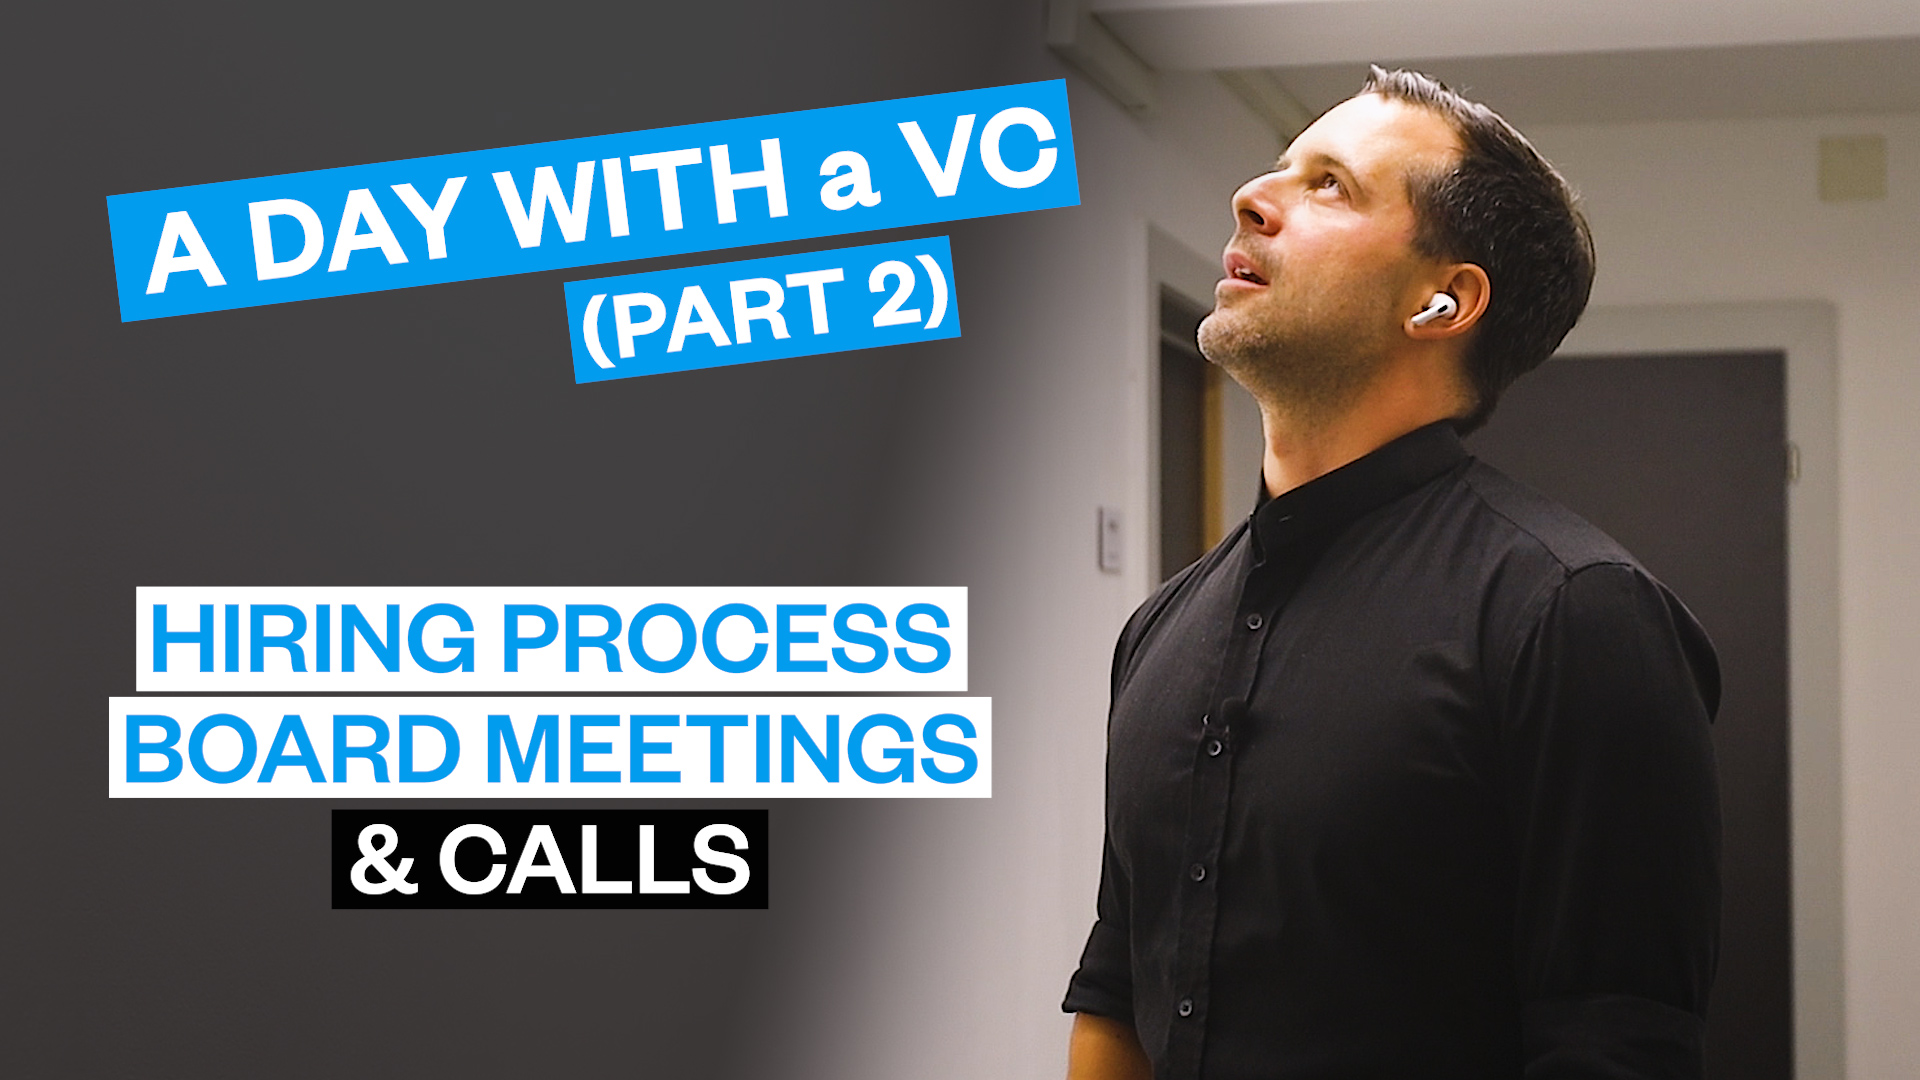 A Day With a VC (Part 2) - Hiring Process, Board Meetings & Calls